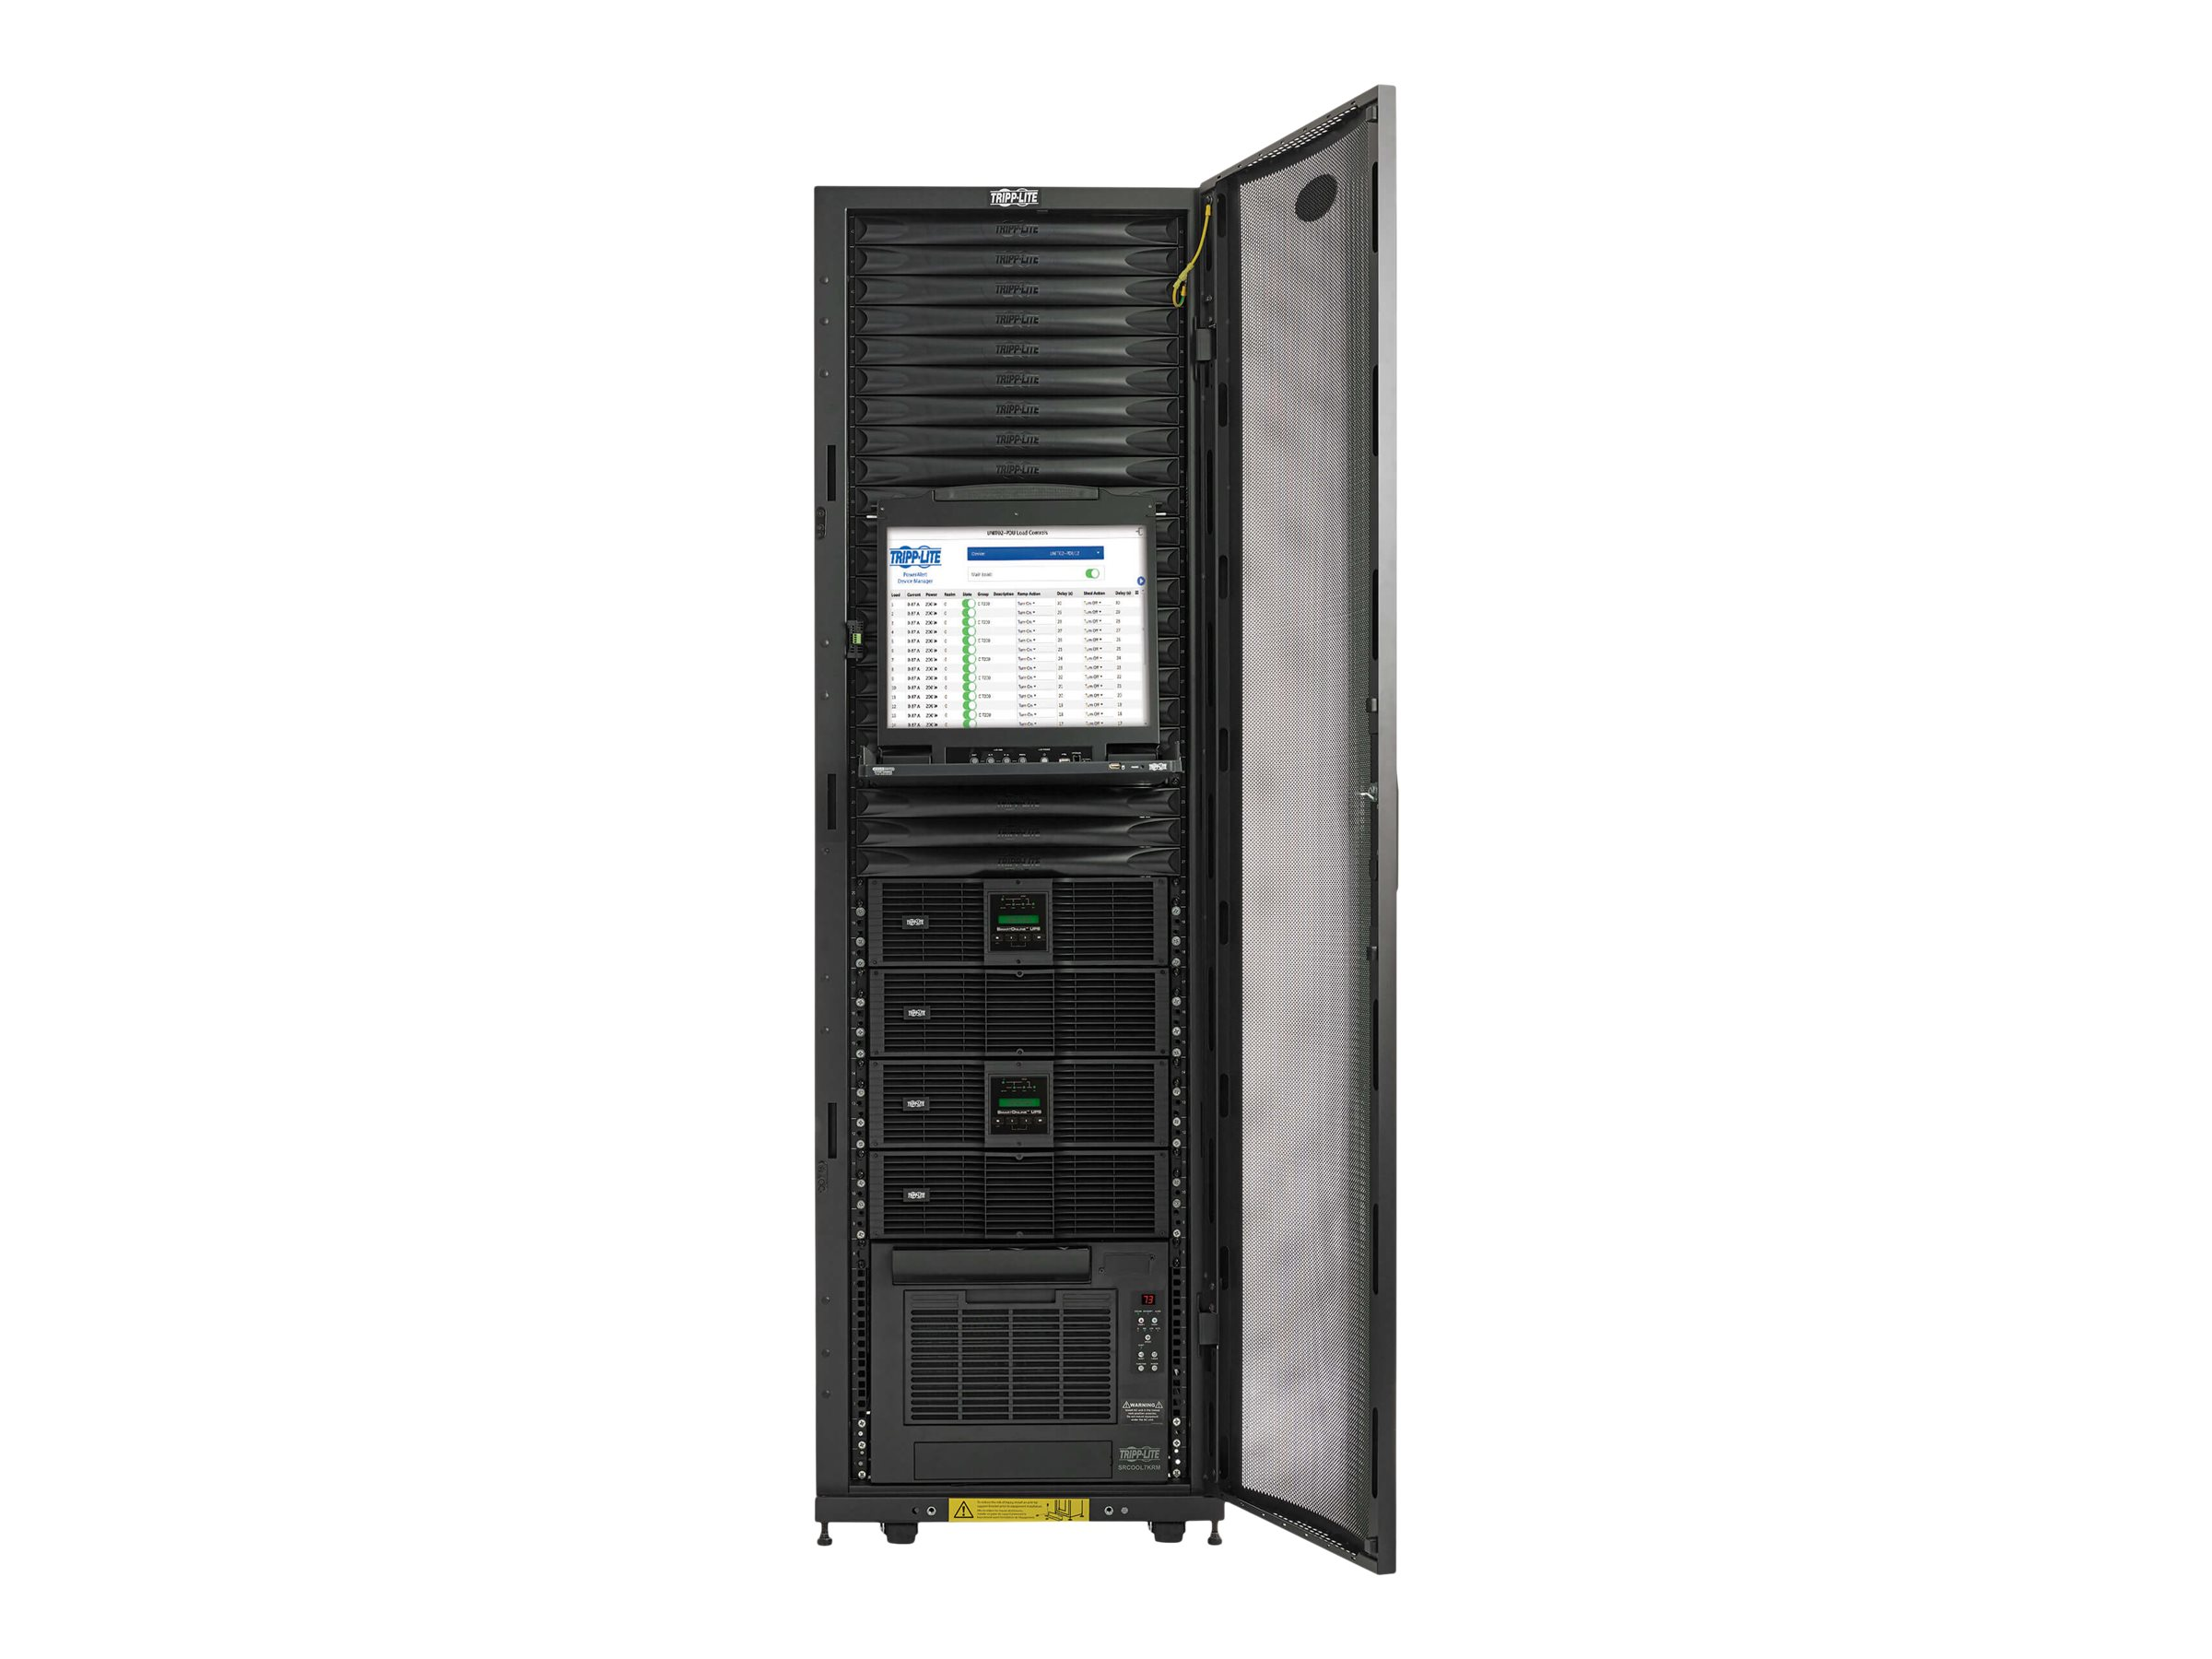 Tripp Lite EdgeReady Micro Data Center - 38U, (2) 3 kVA UPS Systems (N+N), Network Management and Dual PDUs, 120V Assem…